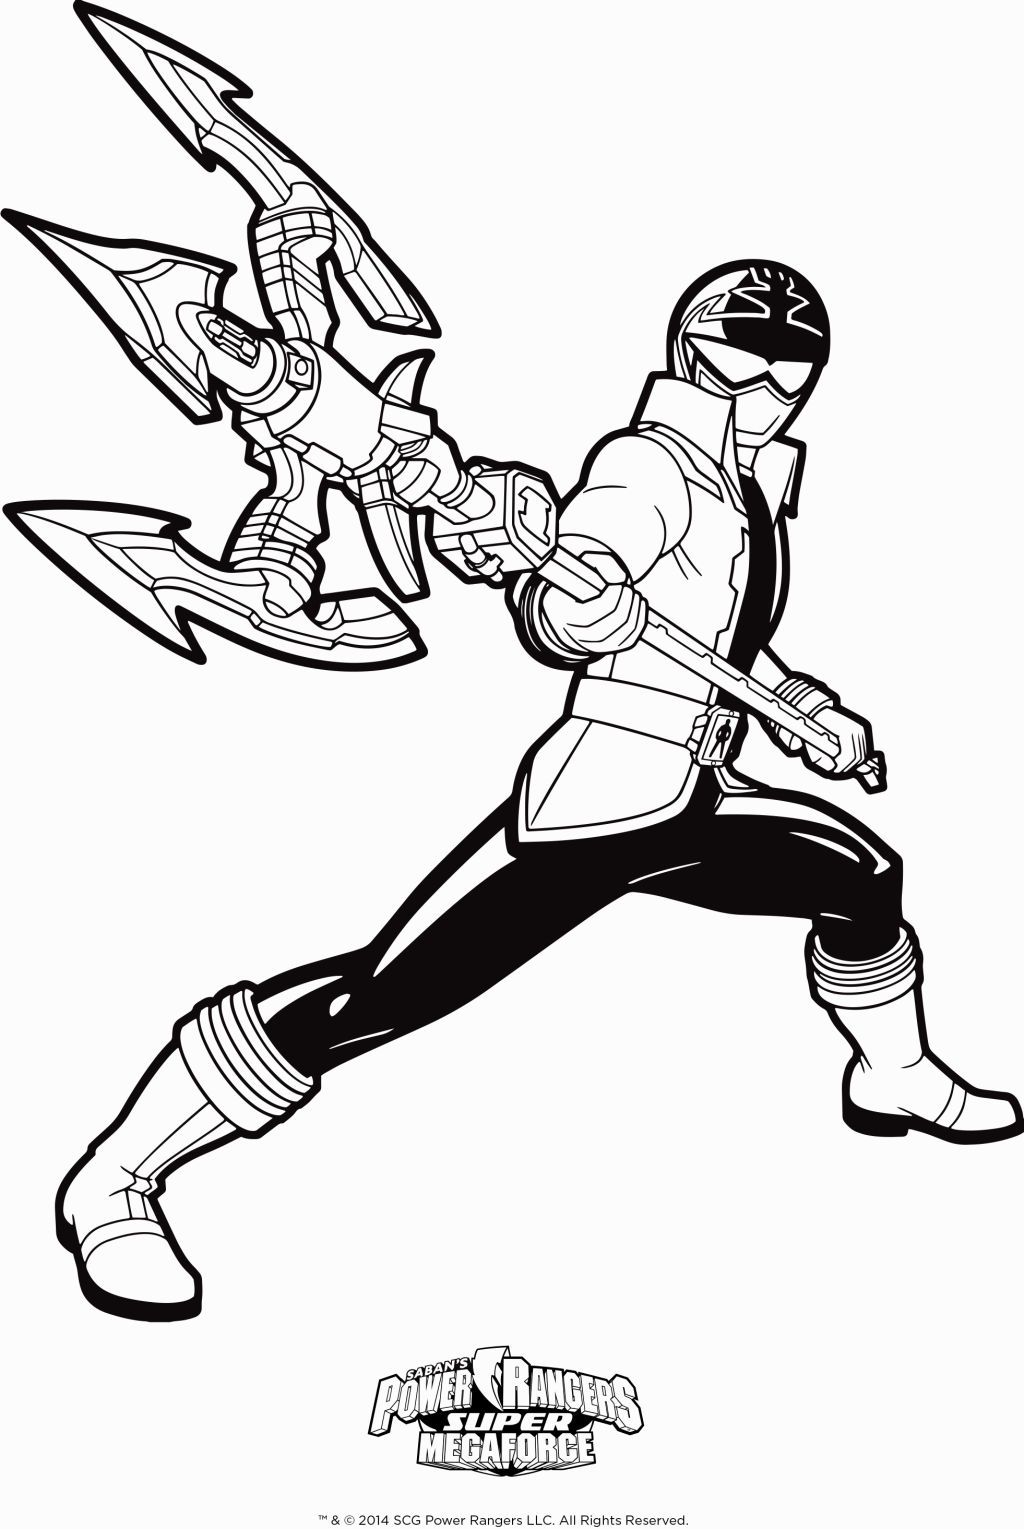 Blue Power Ranger Coloring Pages At Getdrawings | Free intérieur Coloriage Power Rangers Ninja Steel A Imprimer